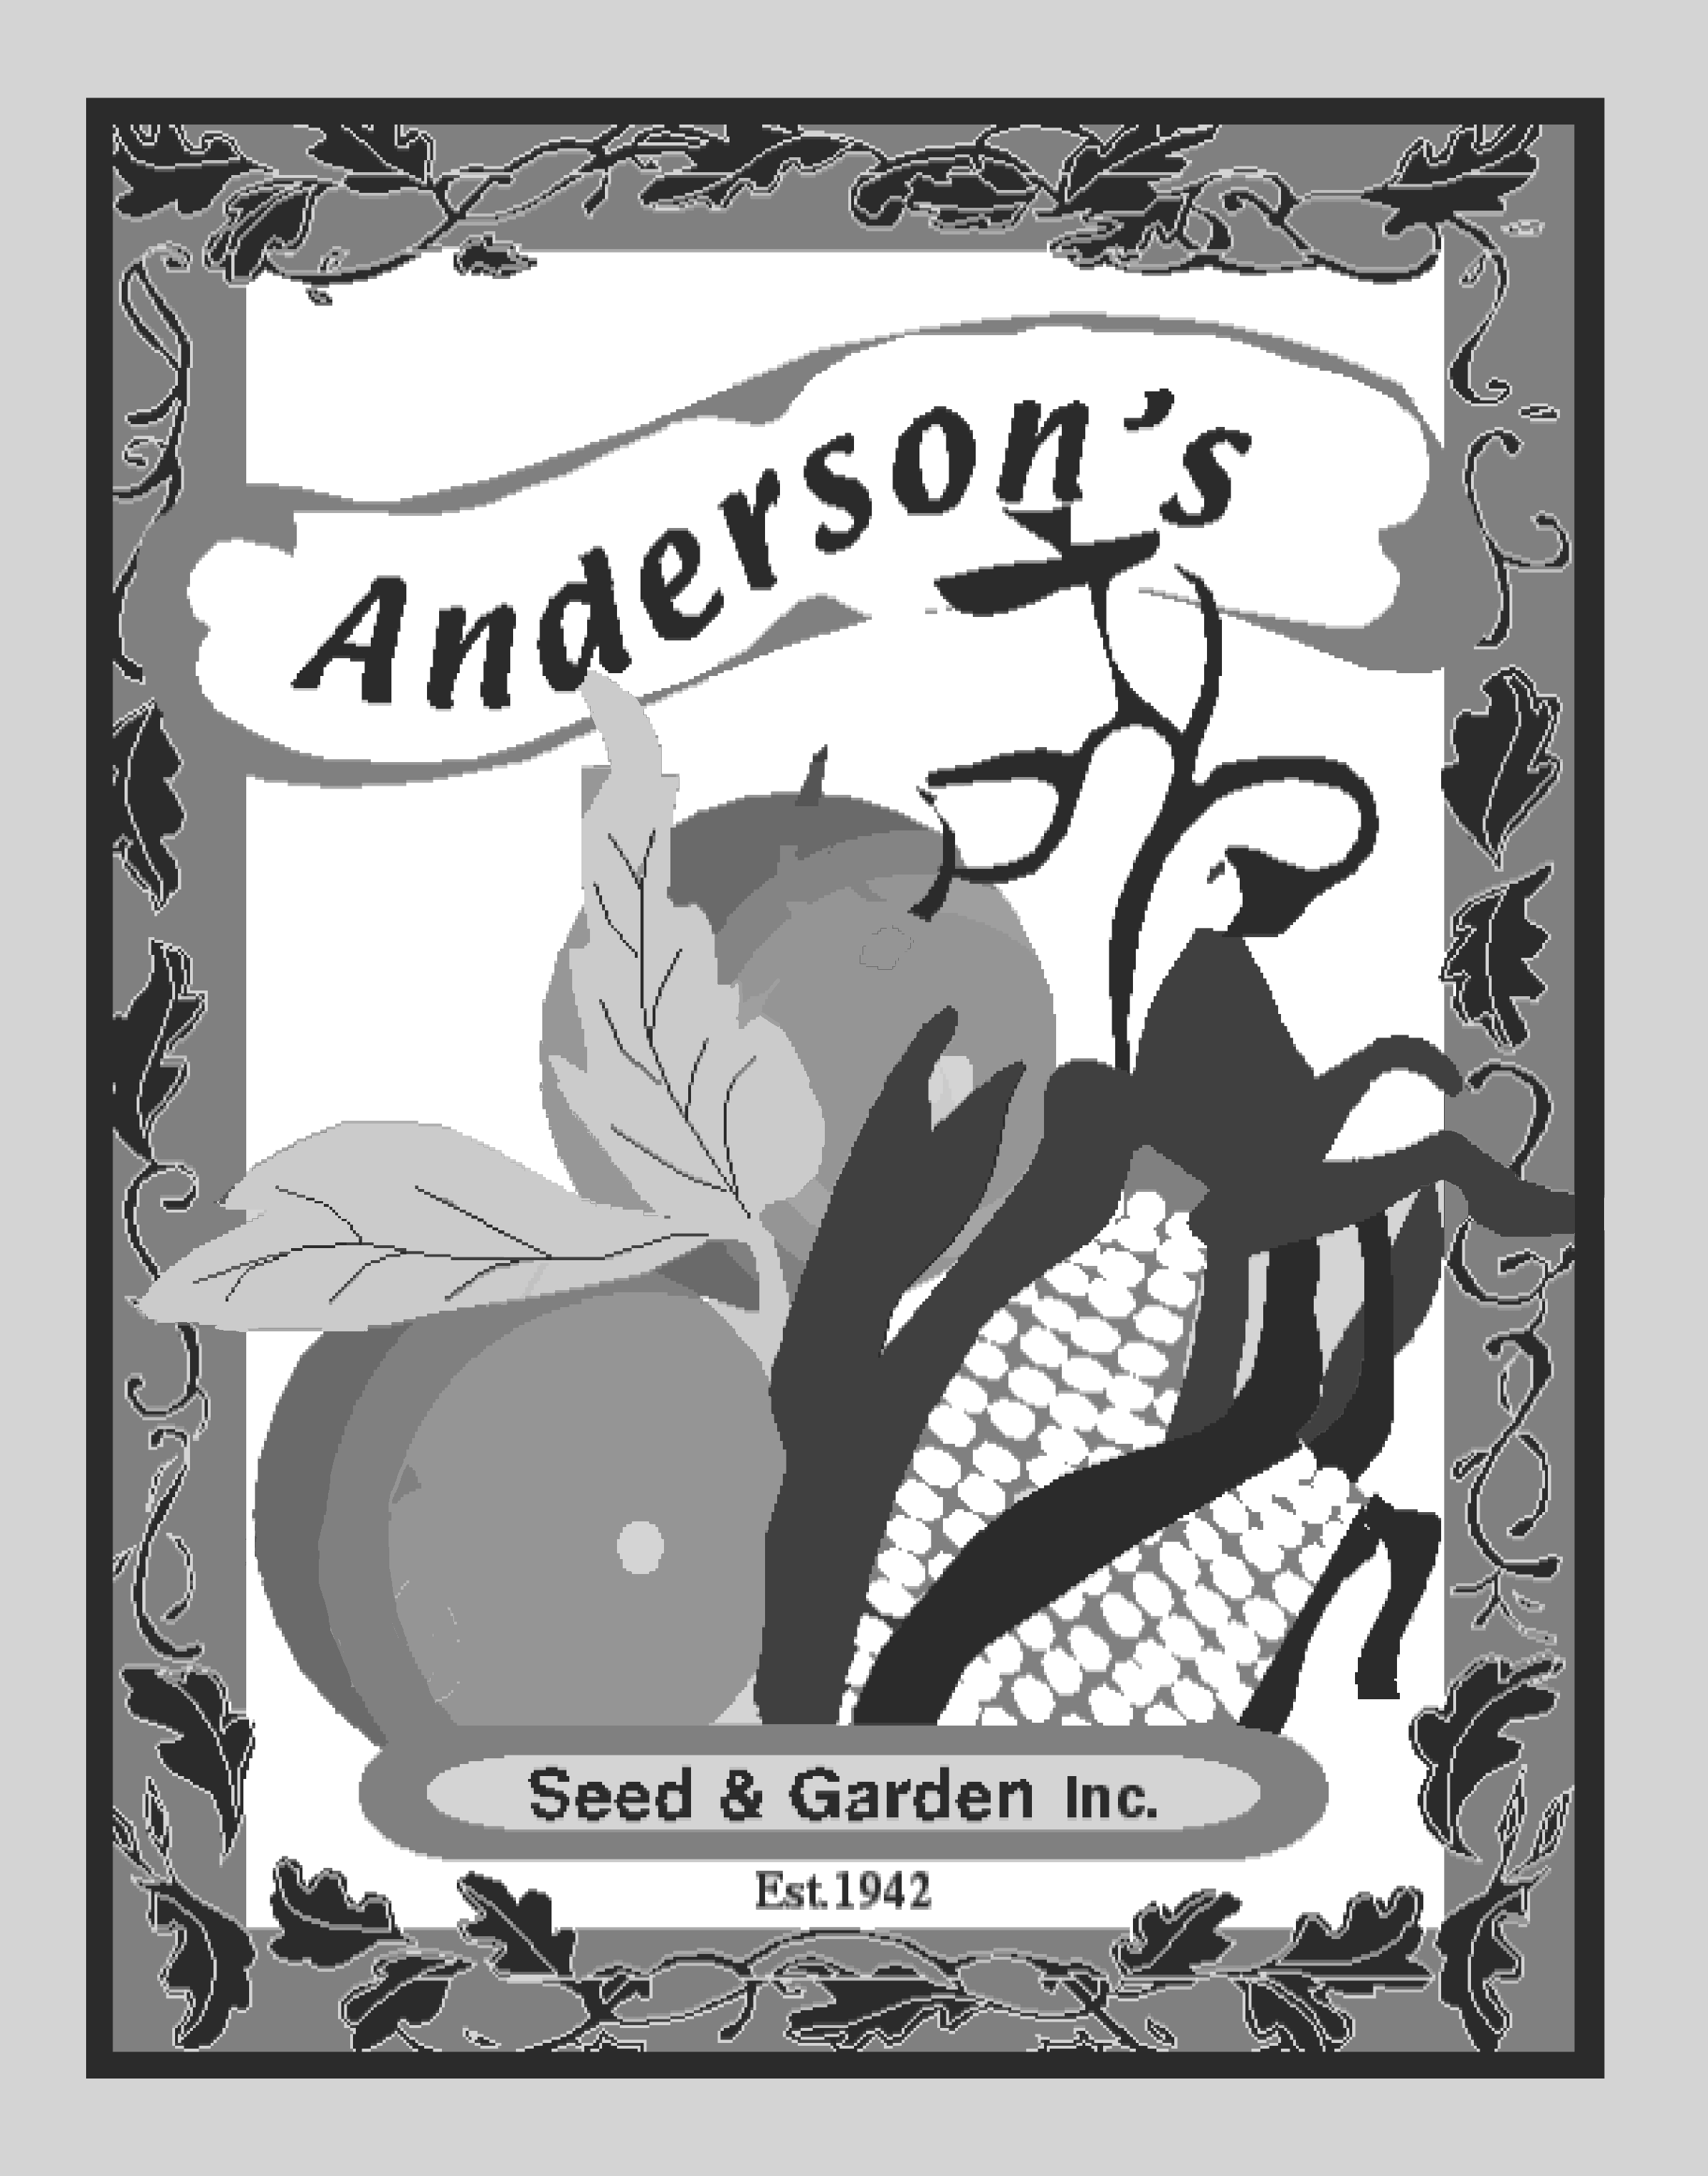 Fanfare Heirloom Cucumber Seed 1oz.